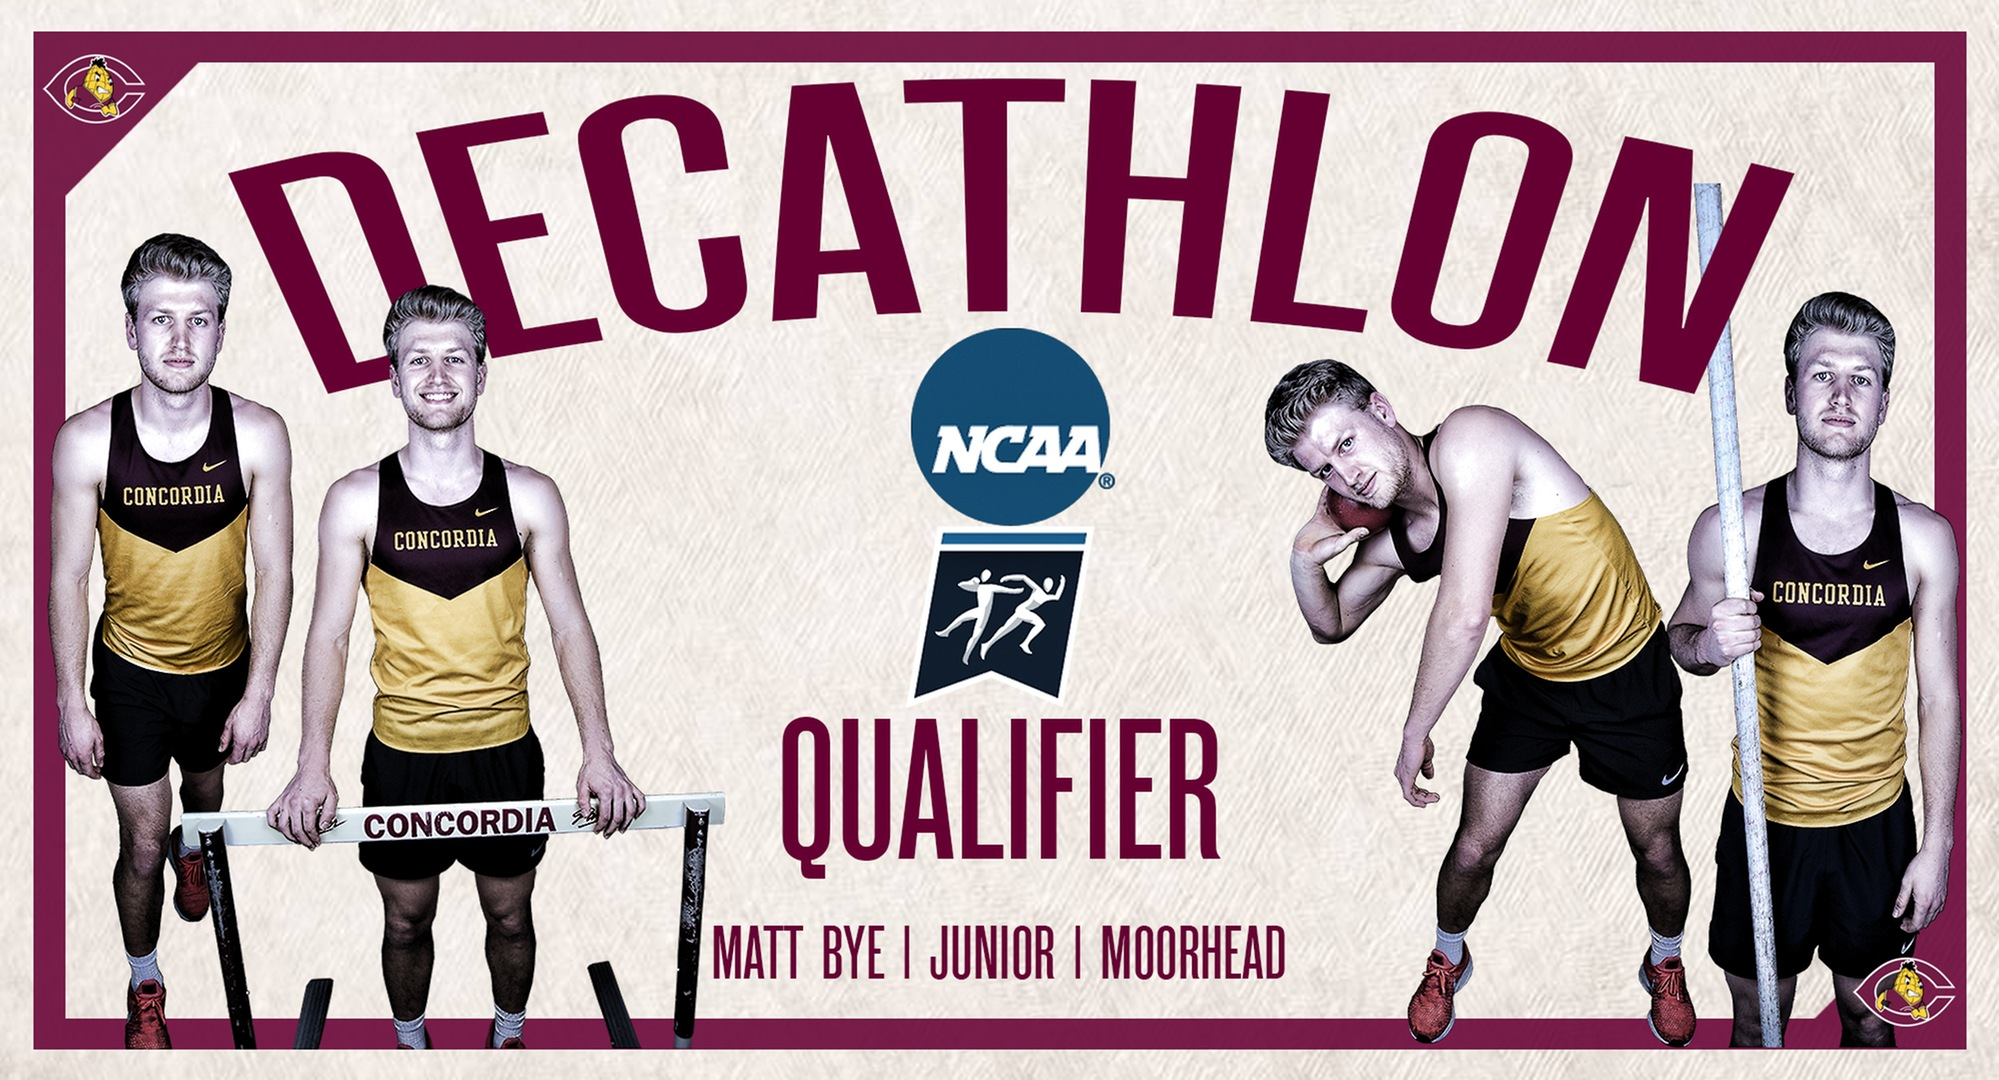 Matt Bye qualified for his second straight NCAA National Outdoor Meet in the decathlon.